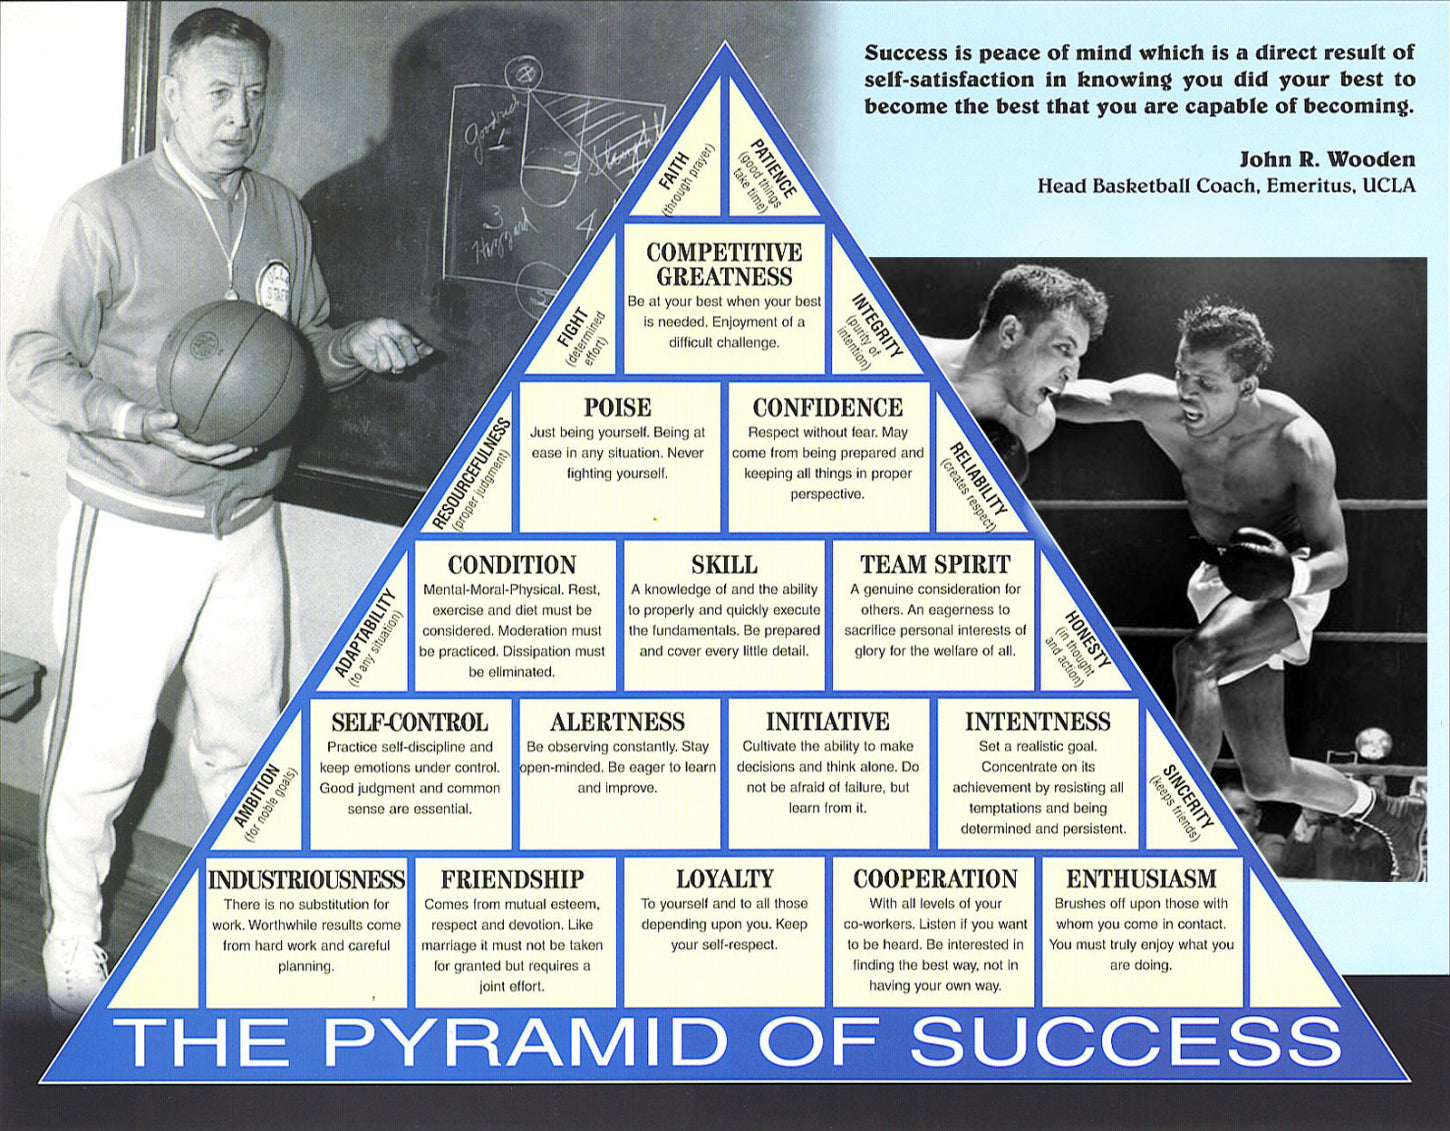 THE PYRAMID OF SUCCESS - The Late John Wooden